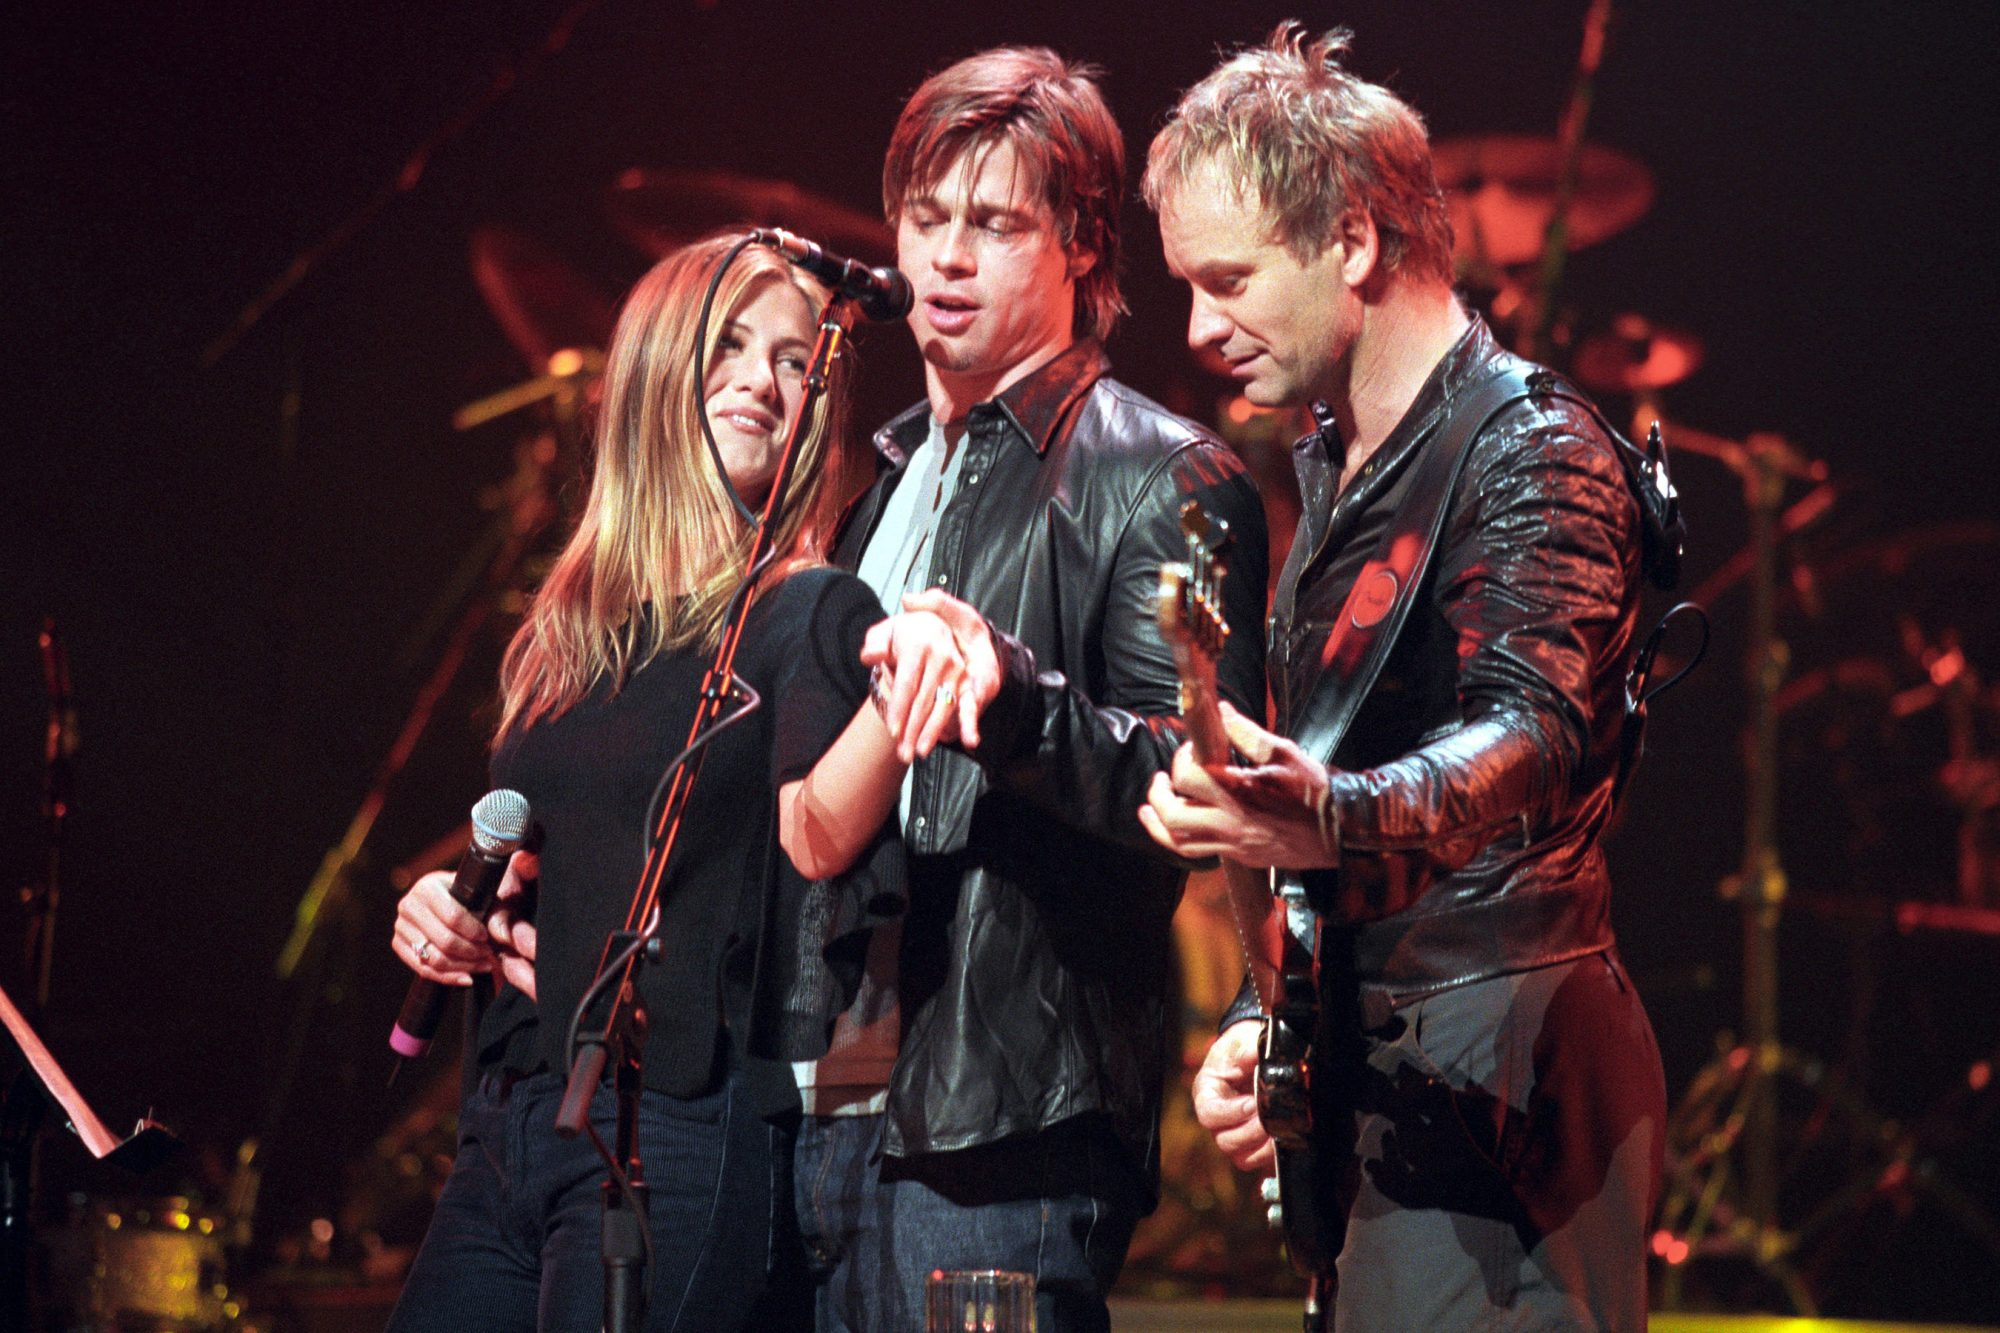 Jennifer Aniston and Brad Pitt Onstage During a Sting Concert at the Beacon Theater - File Photos